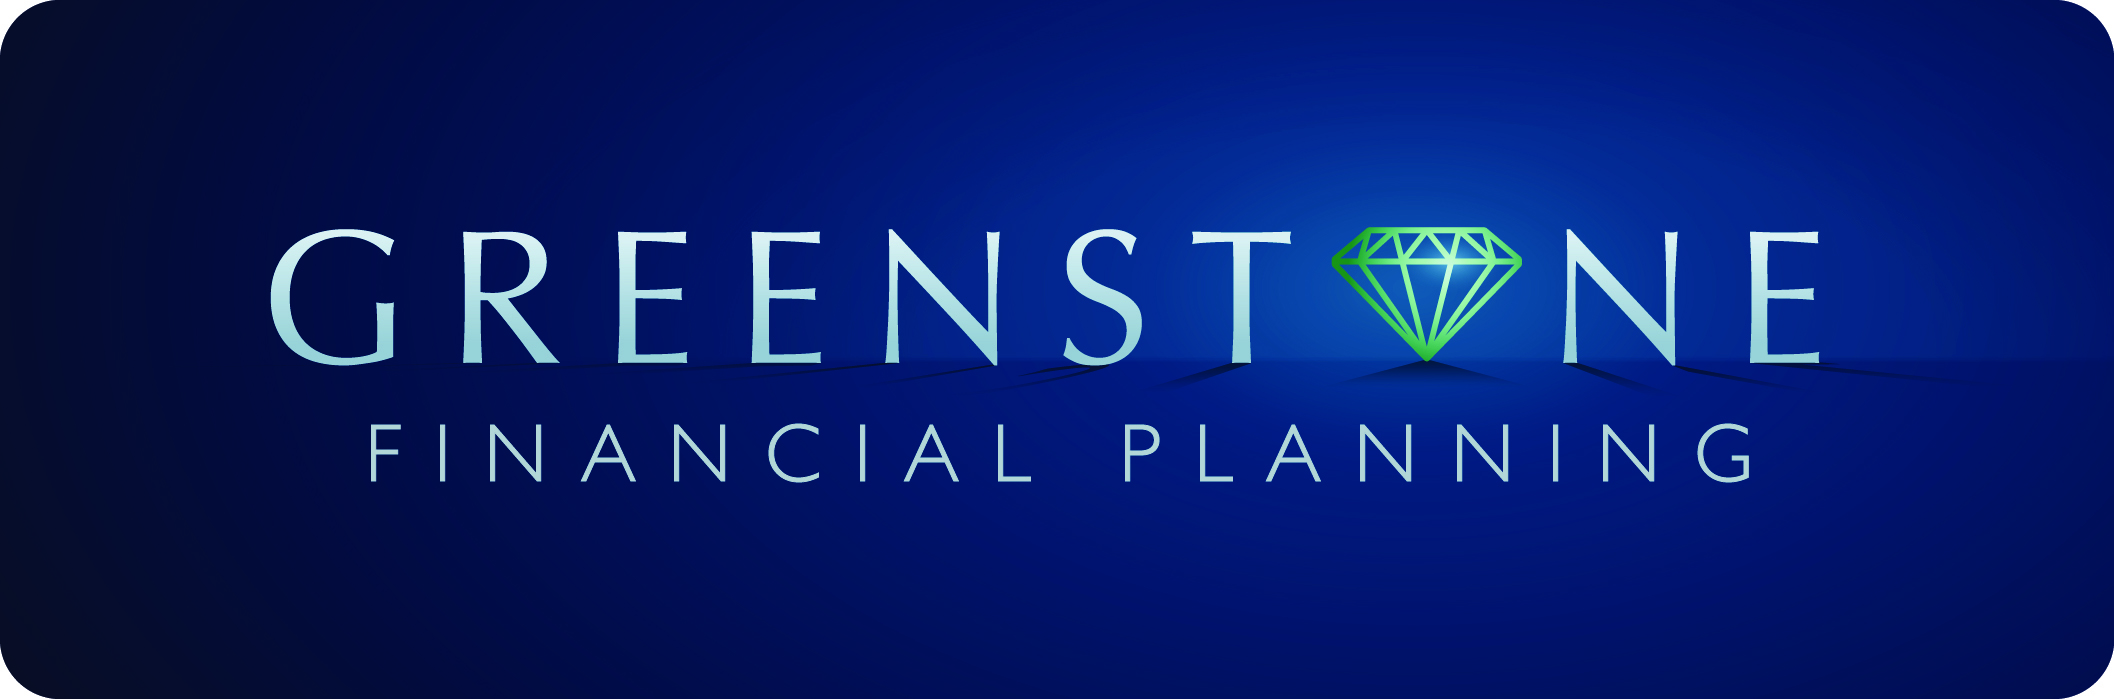 Greenstone Financial Planning